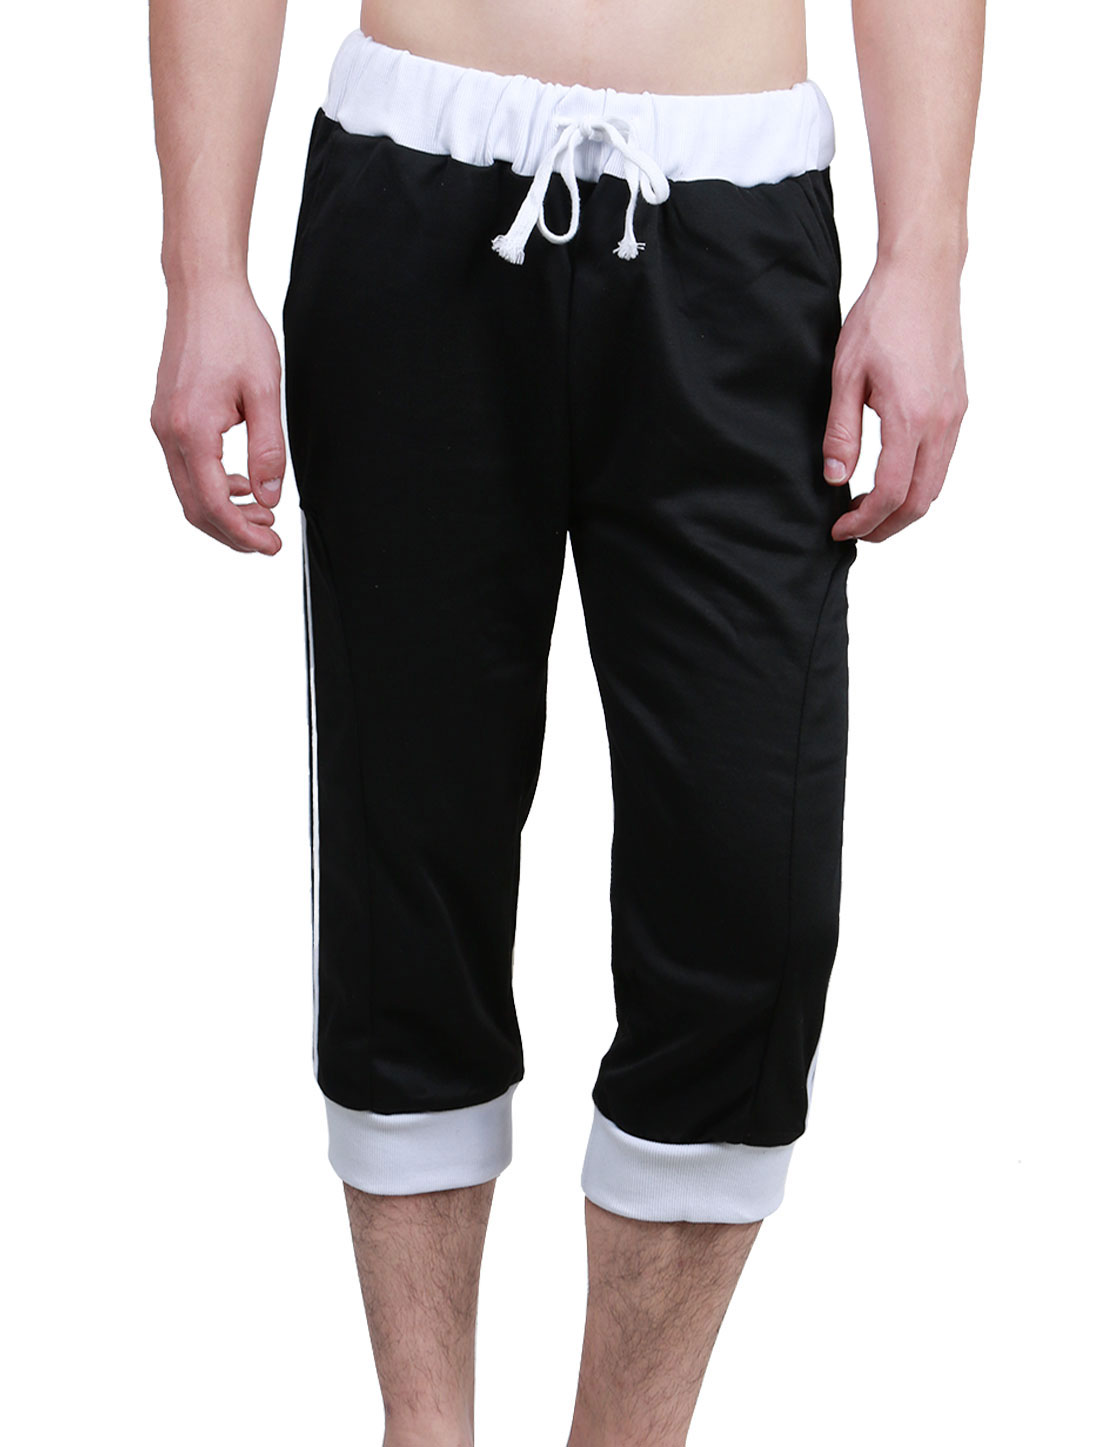 Men Mid Waist Pockets Casual Sport Capris Black White W30